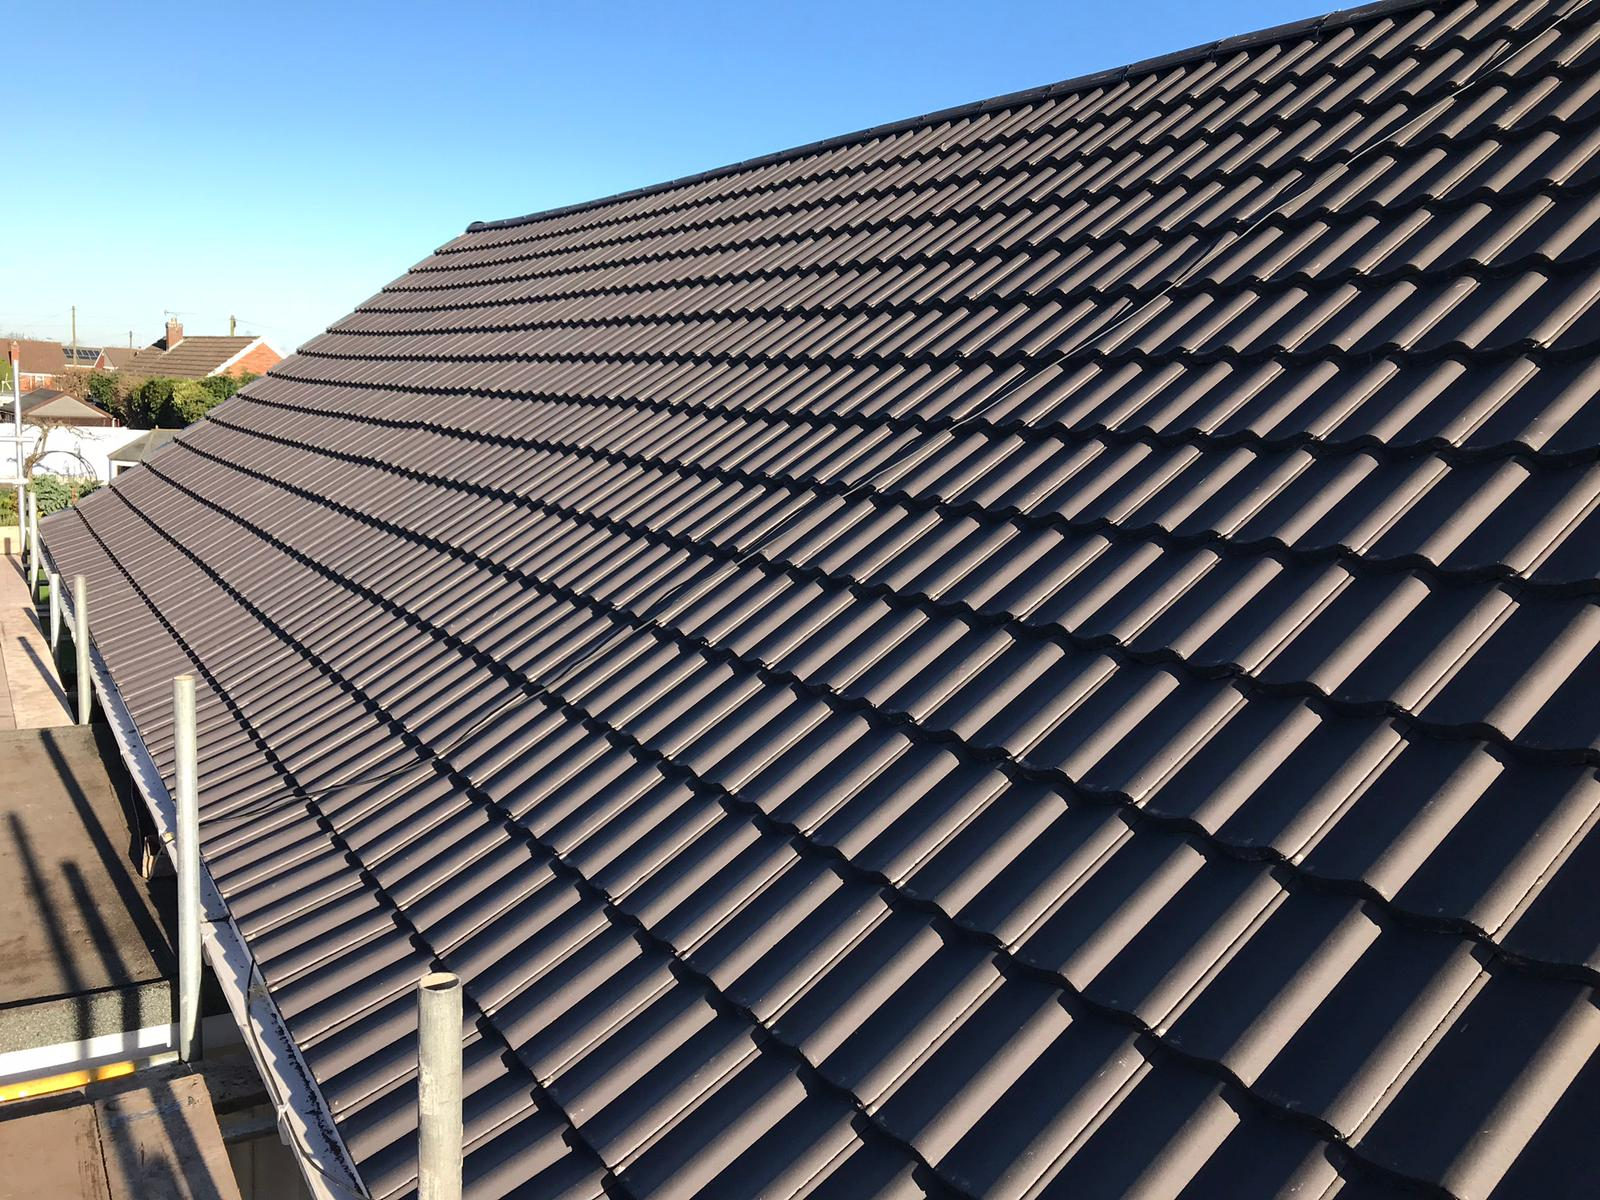 slate roofing work